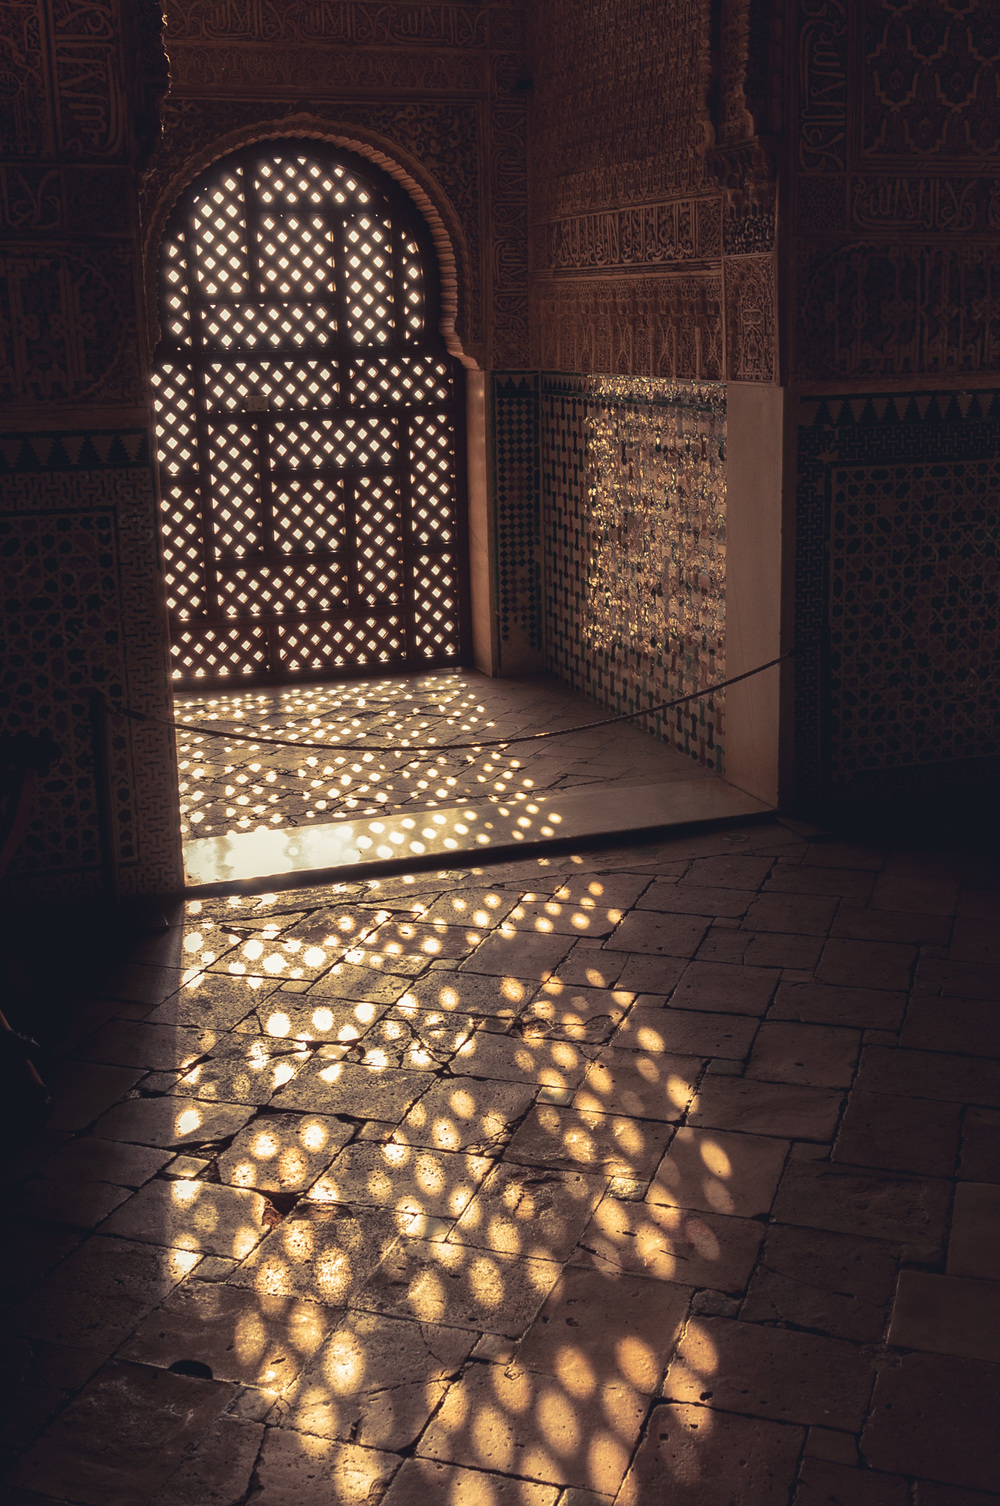 Evening light through a window in the Alhambra.